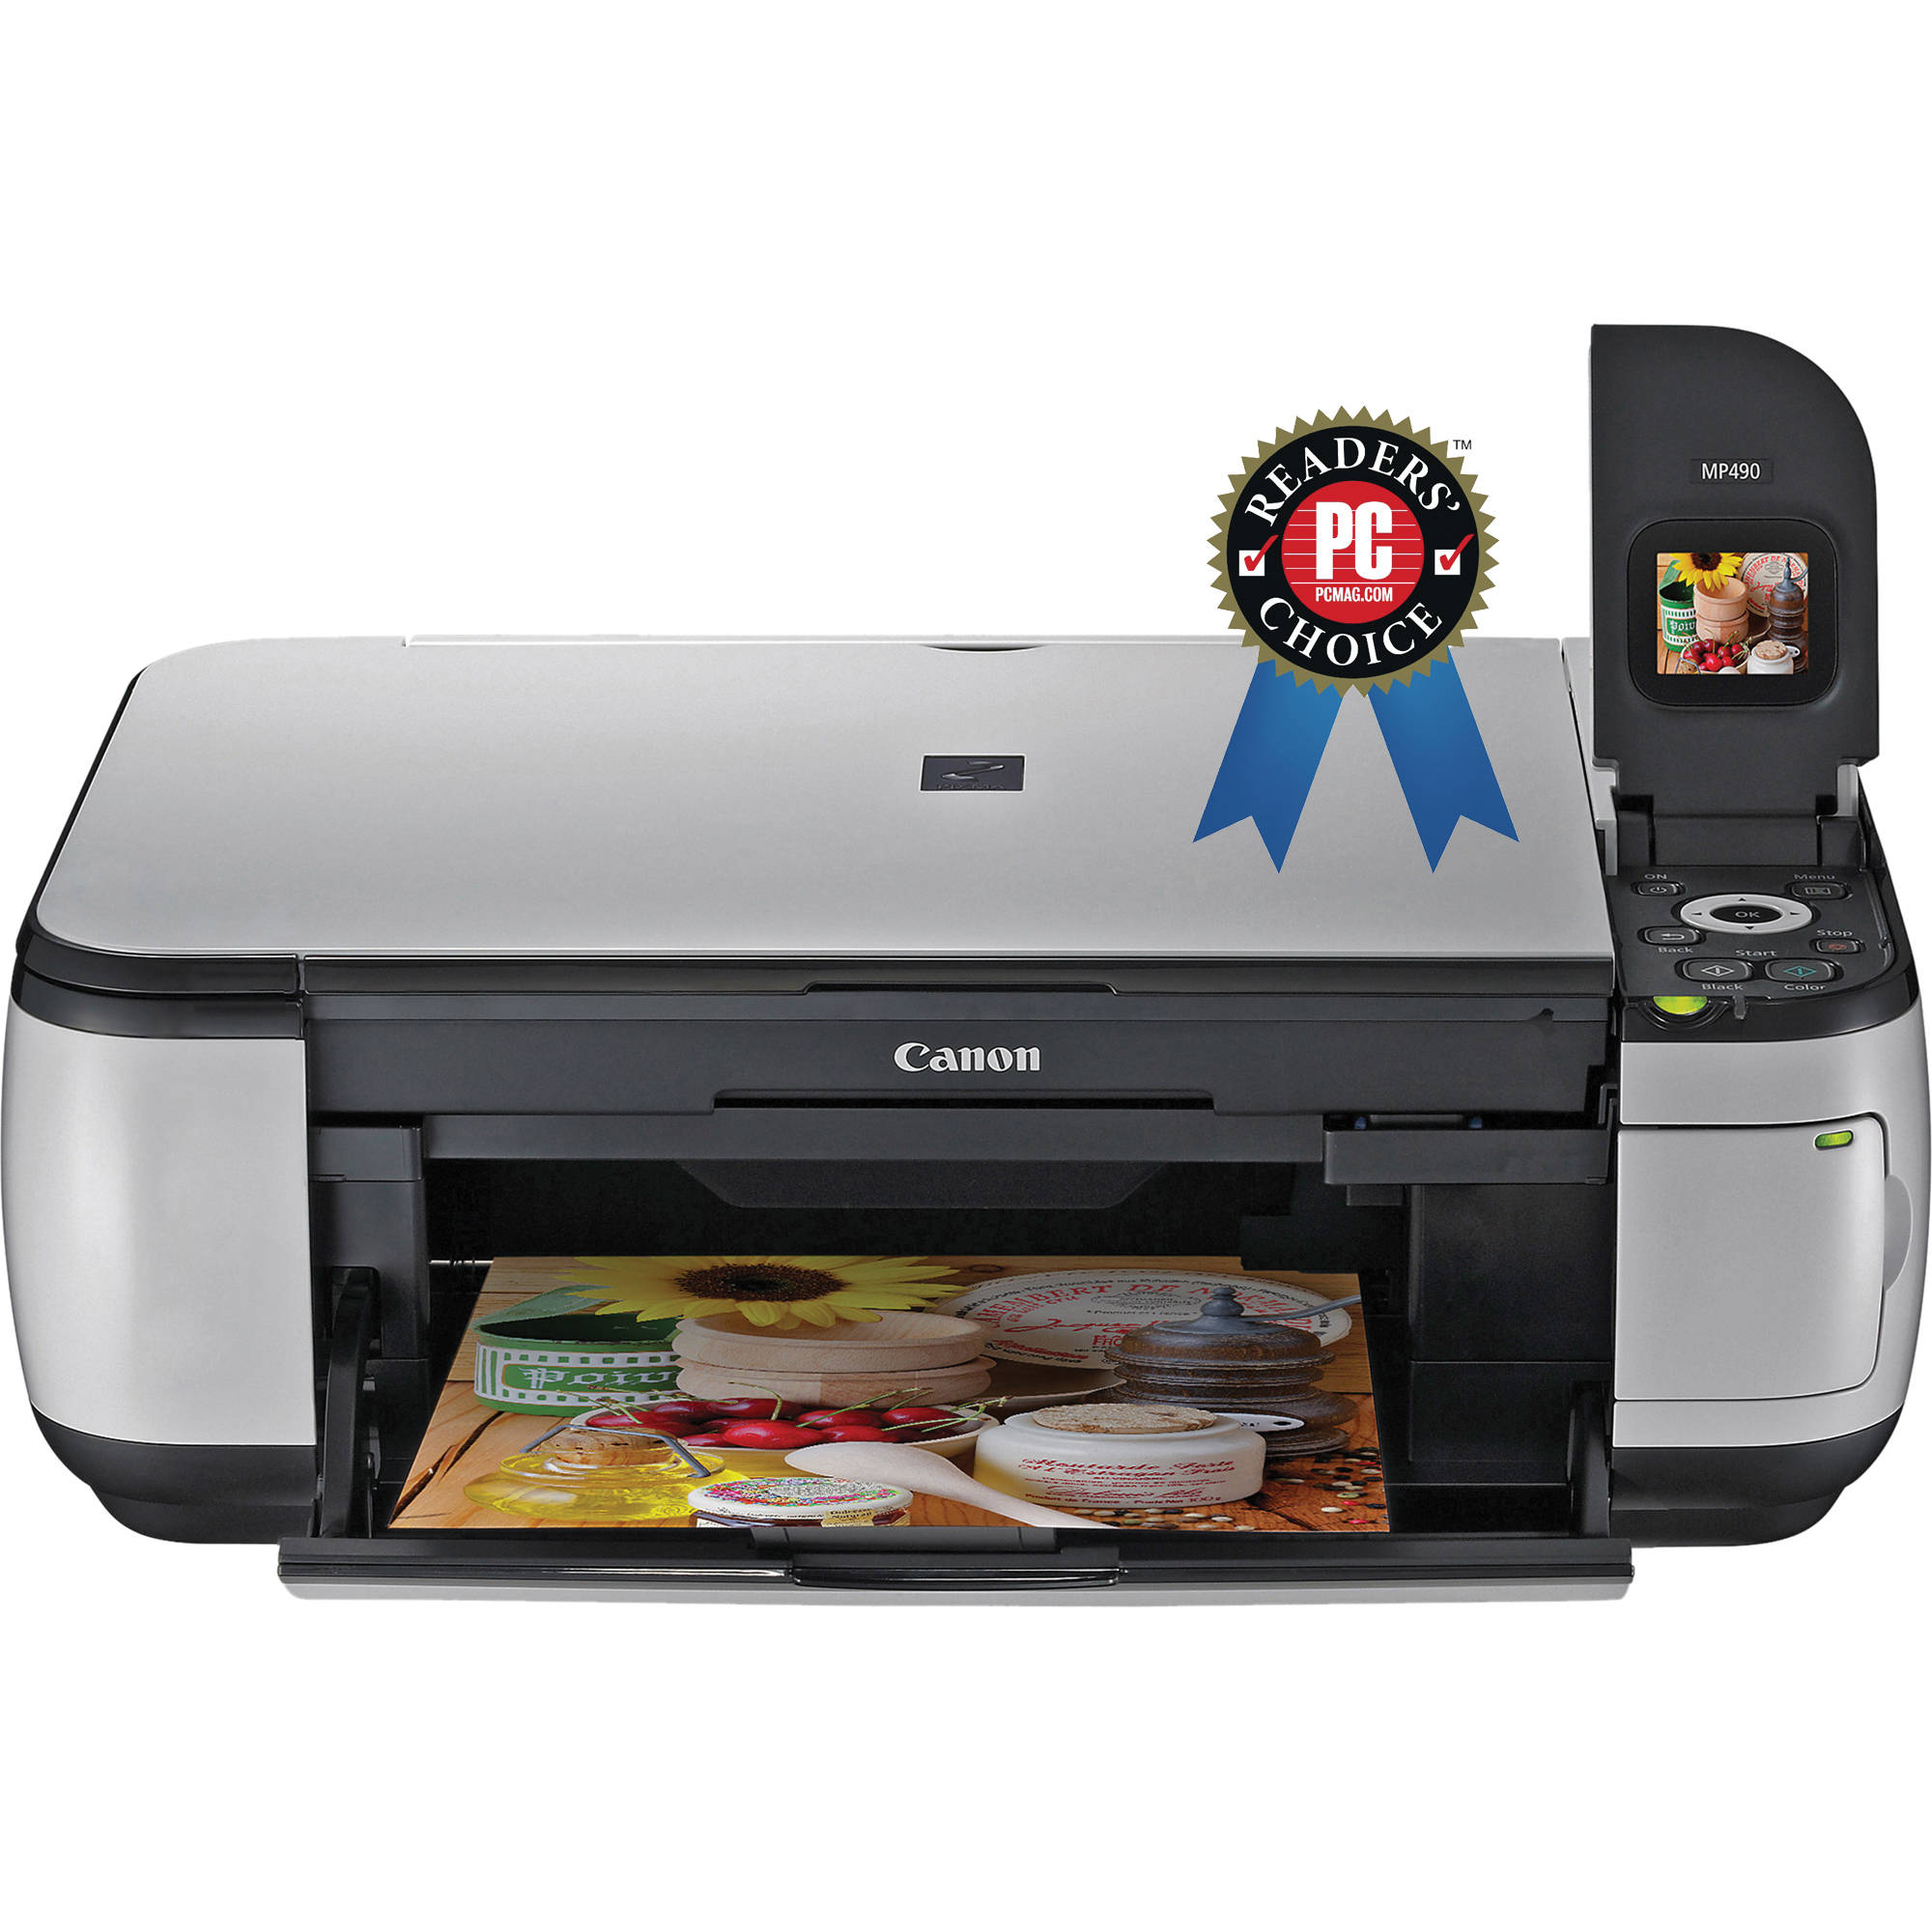 Canon Pixma MP490 Photo All-In-One Printer